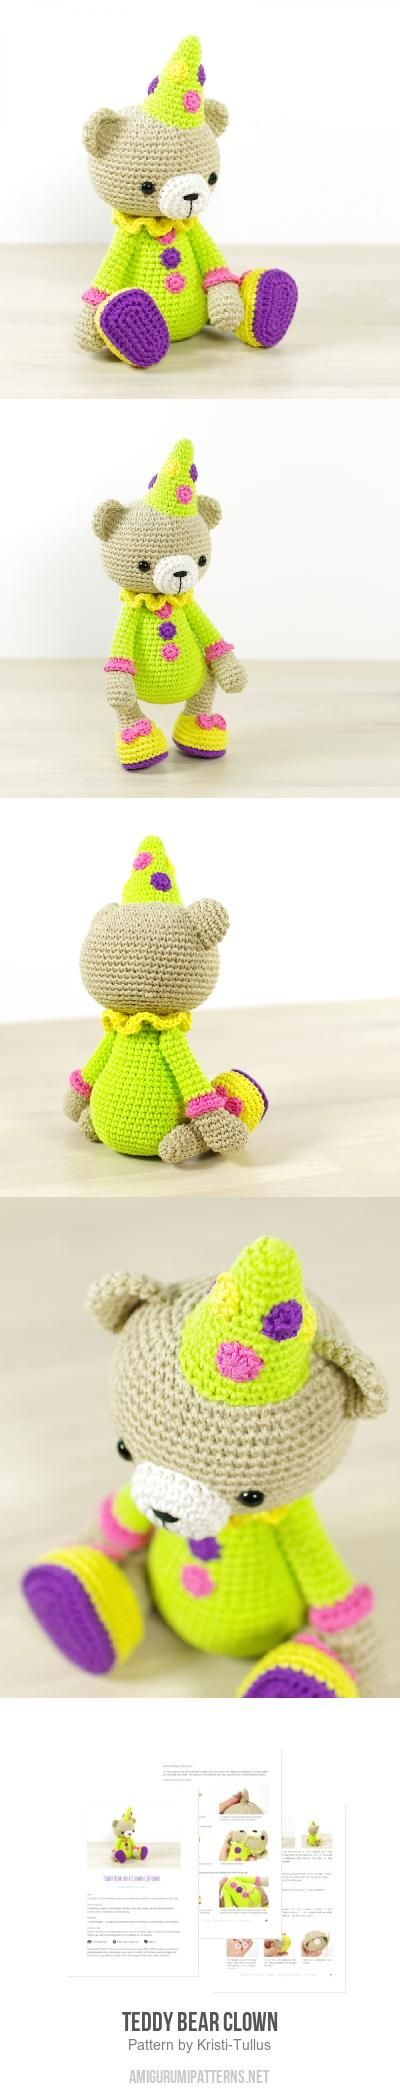 Teddy Bear Clown Amigurumi Pattern